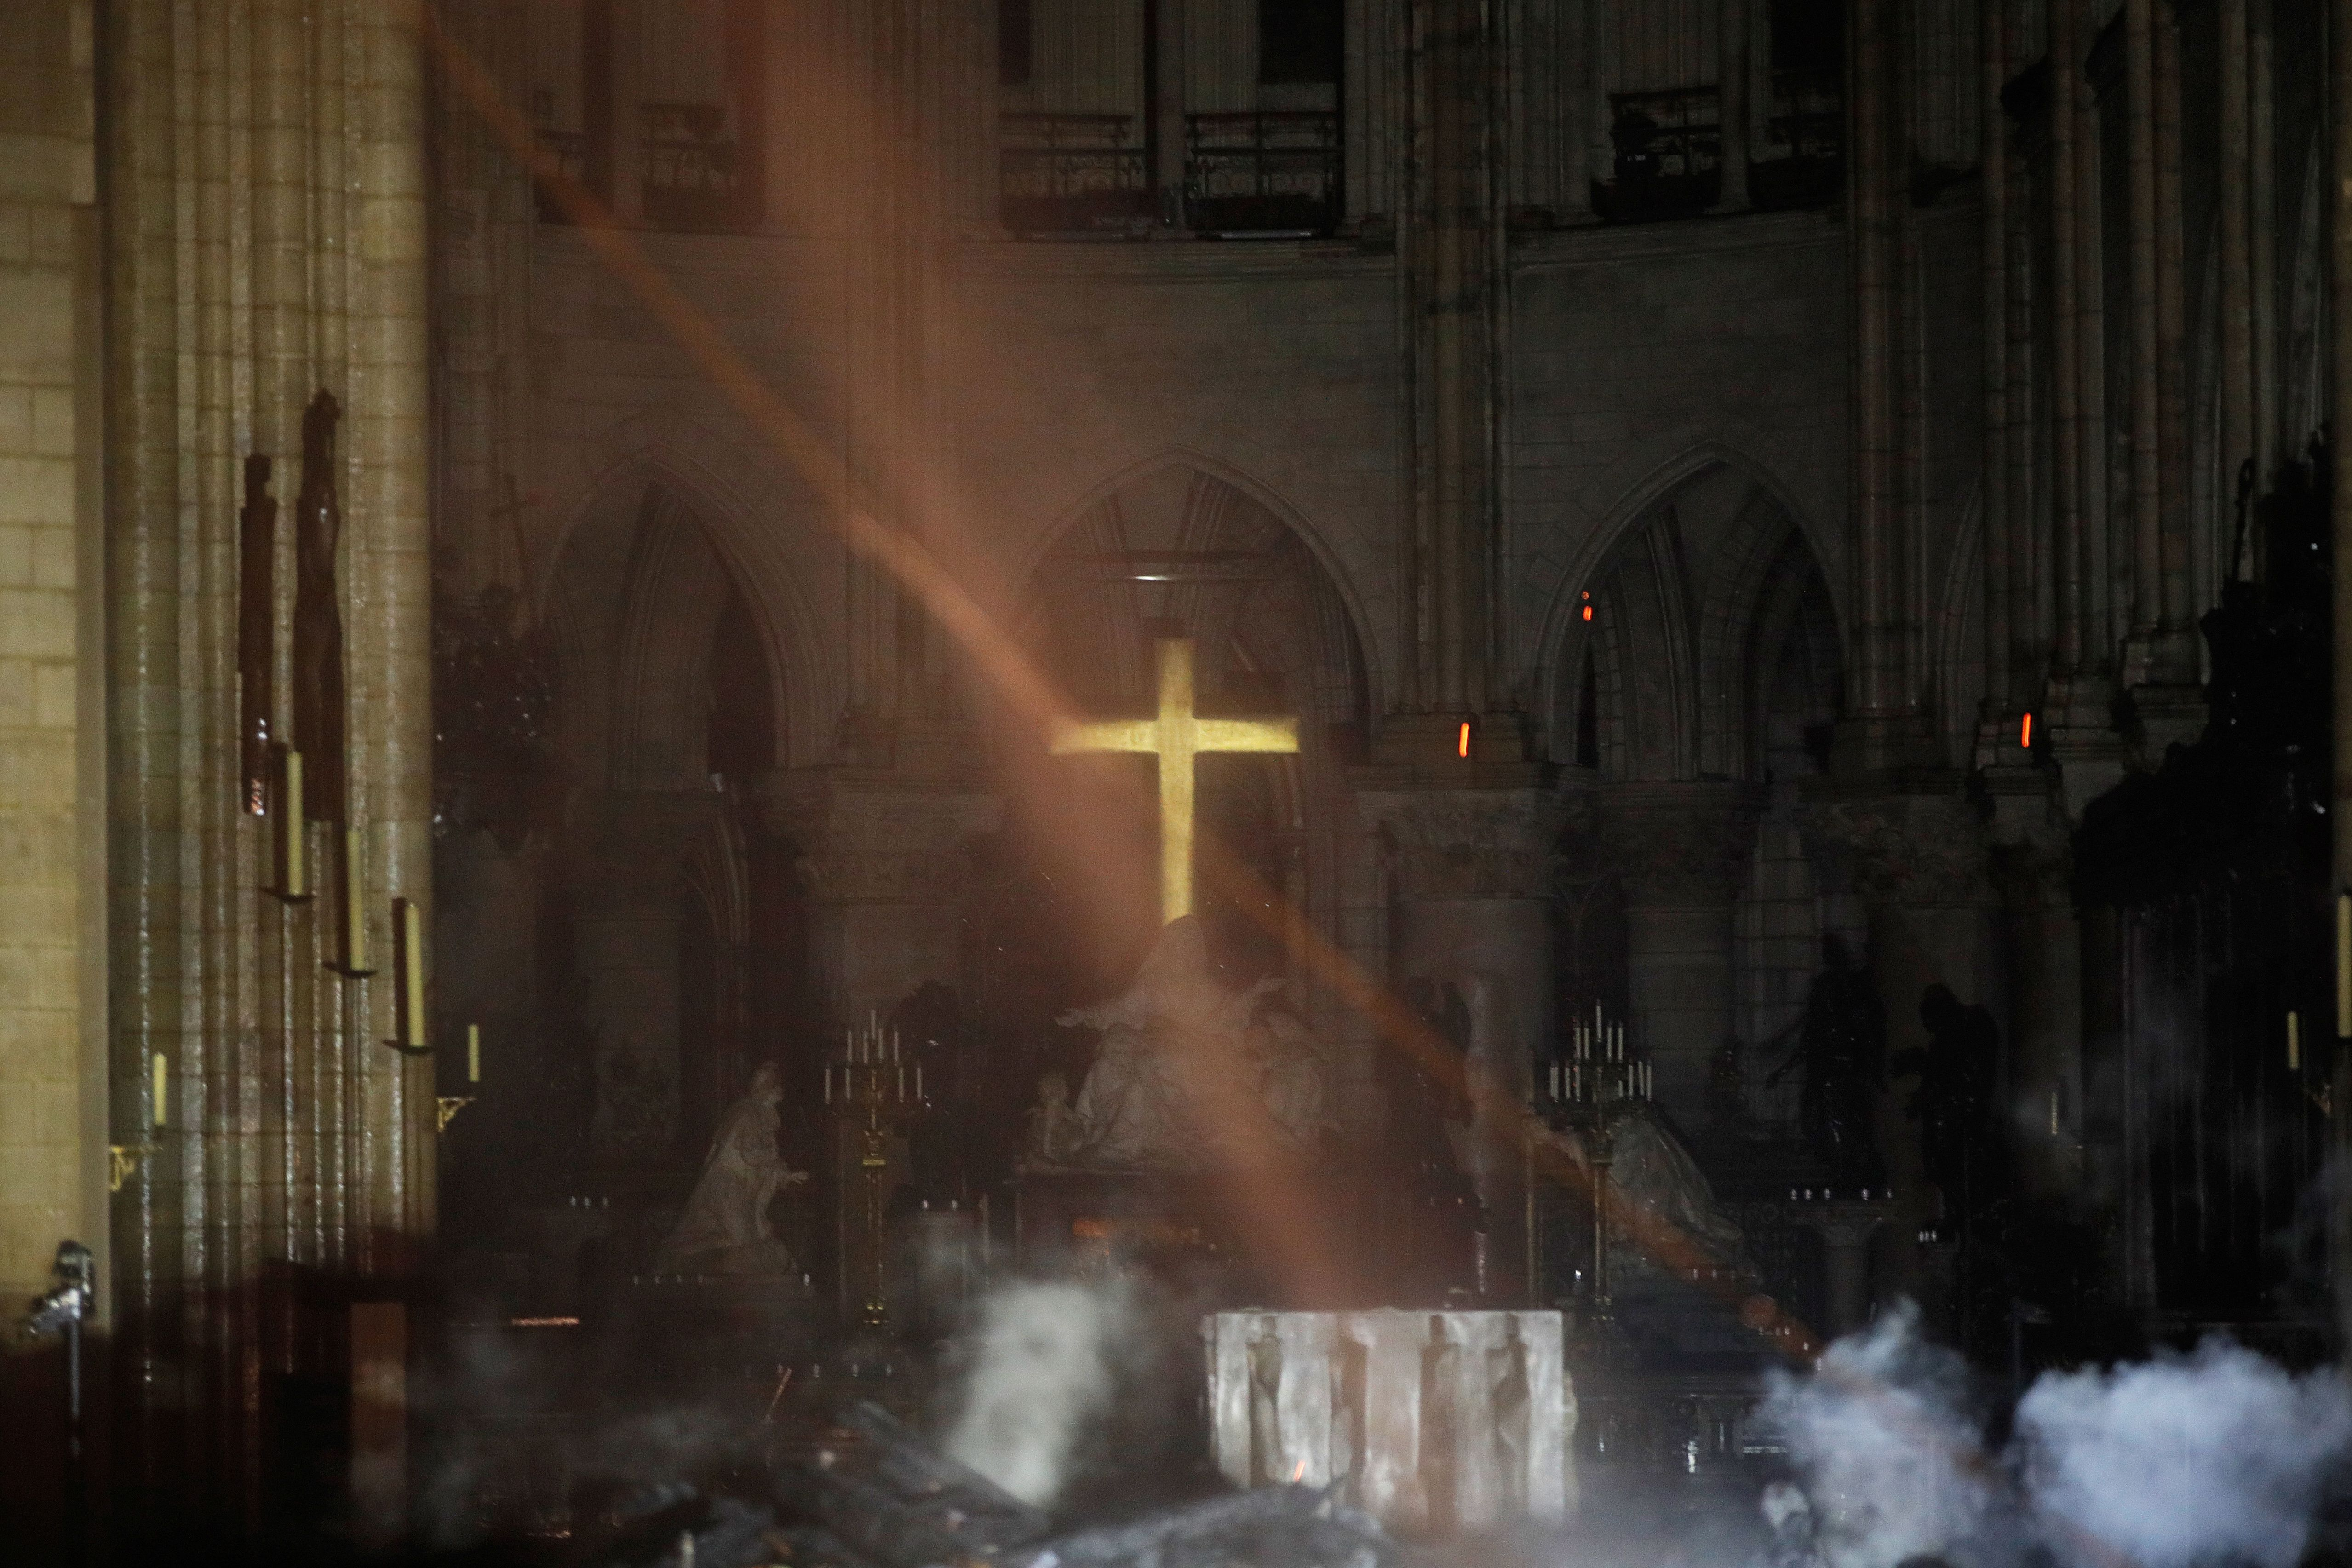 TOPSHOT - Smoke rises around the alter in front of the cross inside the Notre-Dame Cathedral as the fire continues to burn on April 16, 2019 in the French capital Paris. - A huge fire swept through the roof of the famed Notre-Dame Cathedral in central Paris on April 15, 2019, sending flames and huge clouds of grey smoke billowing into the sky. The flames and smoke plumed from the spire and roof of the gothic cathedral, visited by millions of people a year. A spokesman for the cathedral told AFP that the wooden structure supporting the roof was being gutted by the blaze. (Photo by PHILIPPE WOJAZER / POOL / AFP) (Photo credit should read PHILIPPE WOJAZER/AFP via Getty Images)